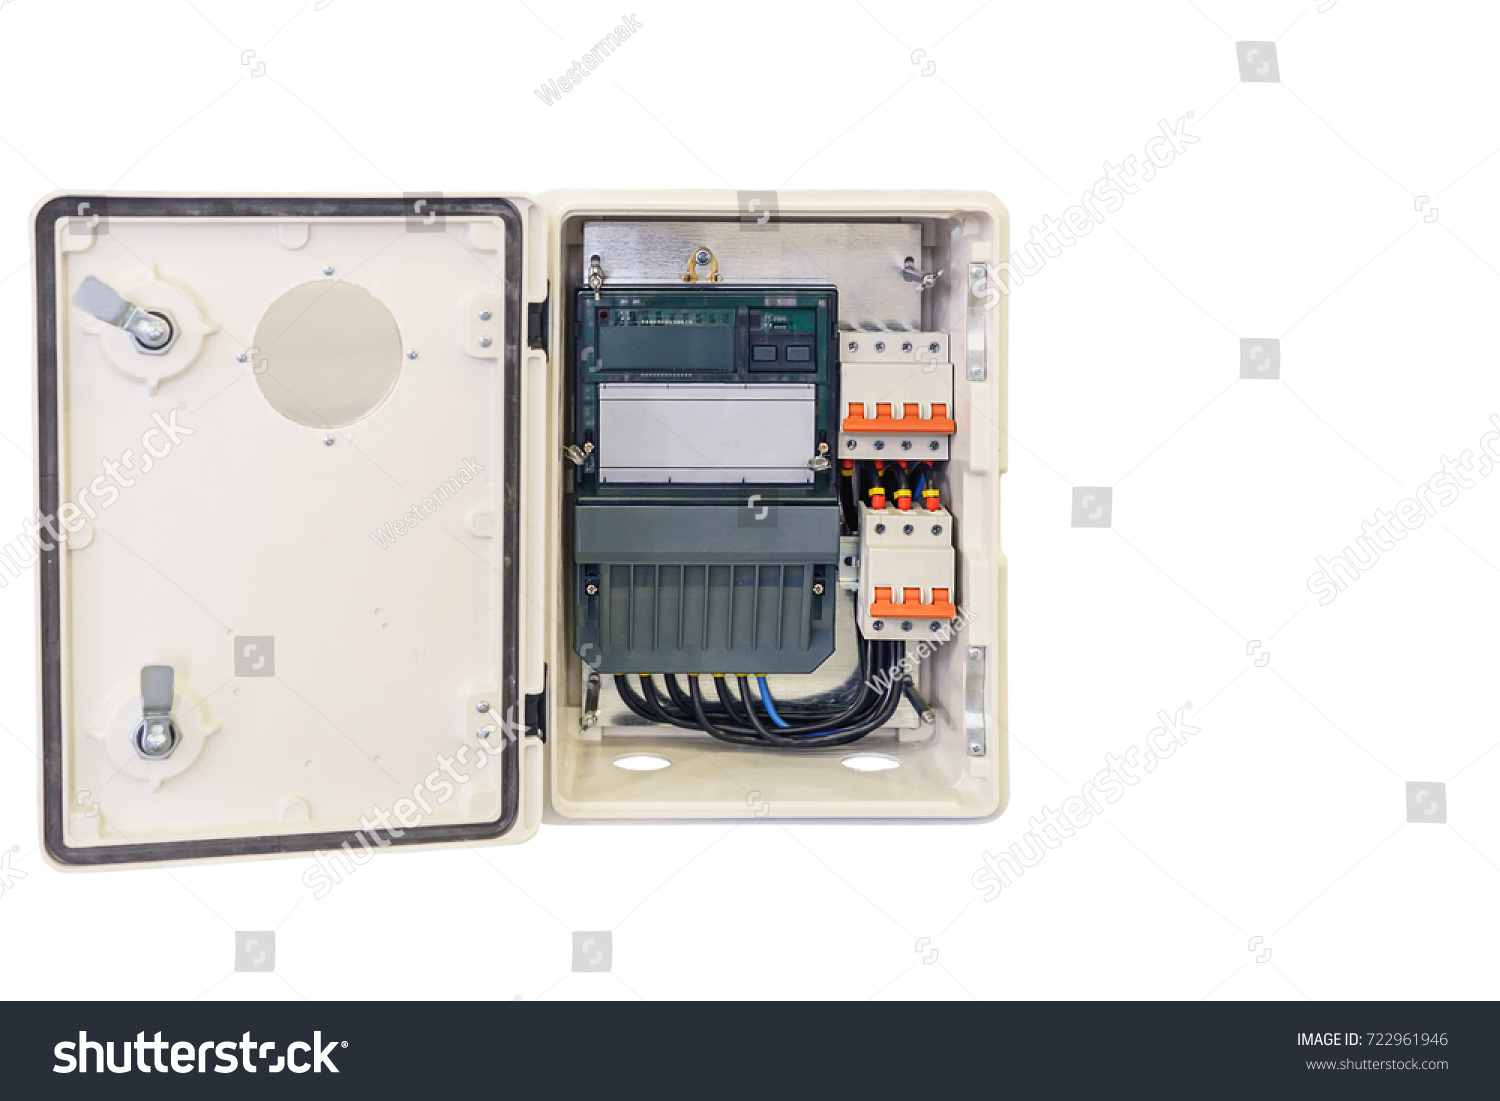 Modern Household Electricity Meter Switching Device Stock Photo ...